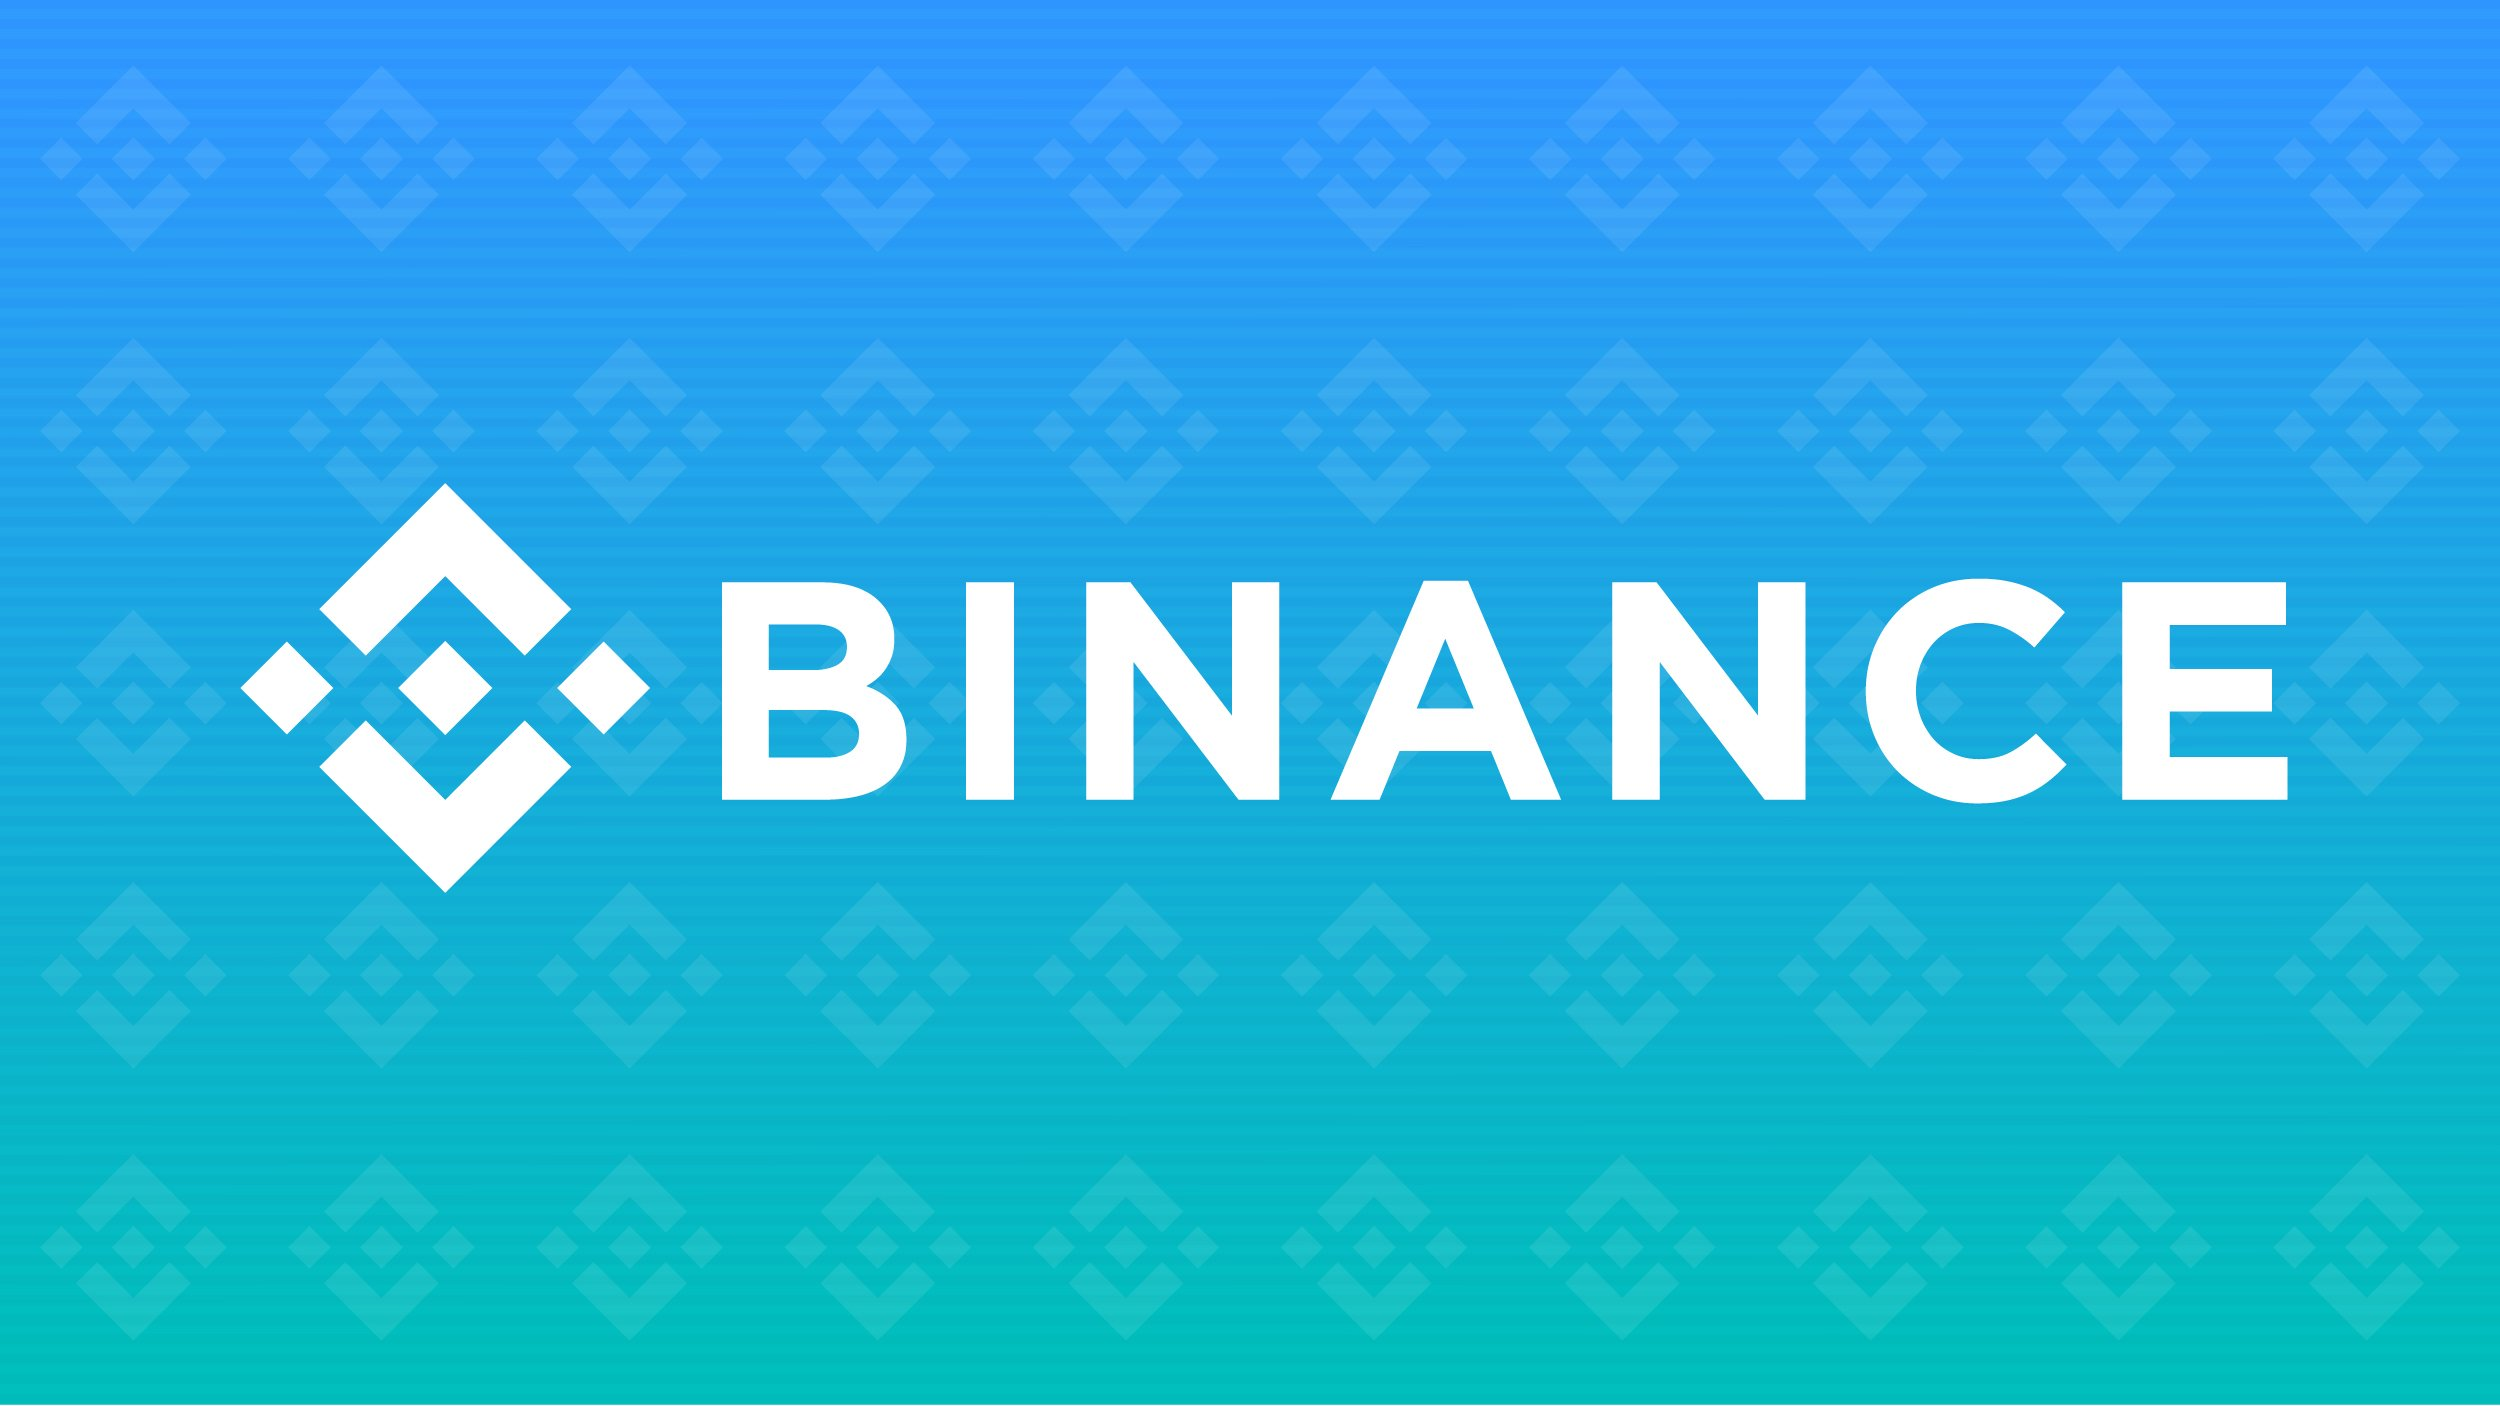 Crypto exchange Binance faces investigation by IRS, Department of Justice: report